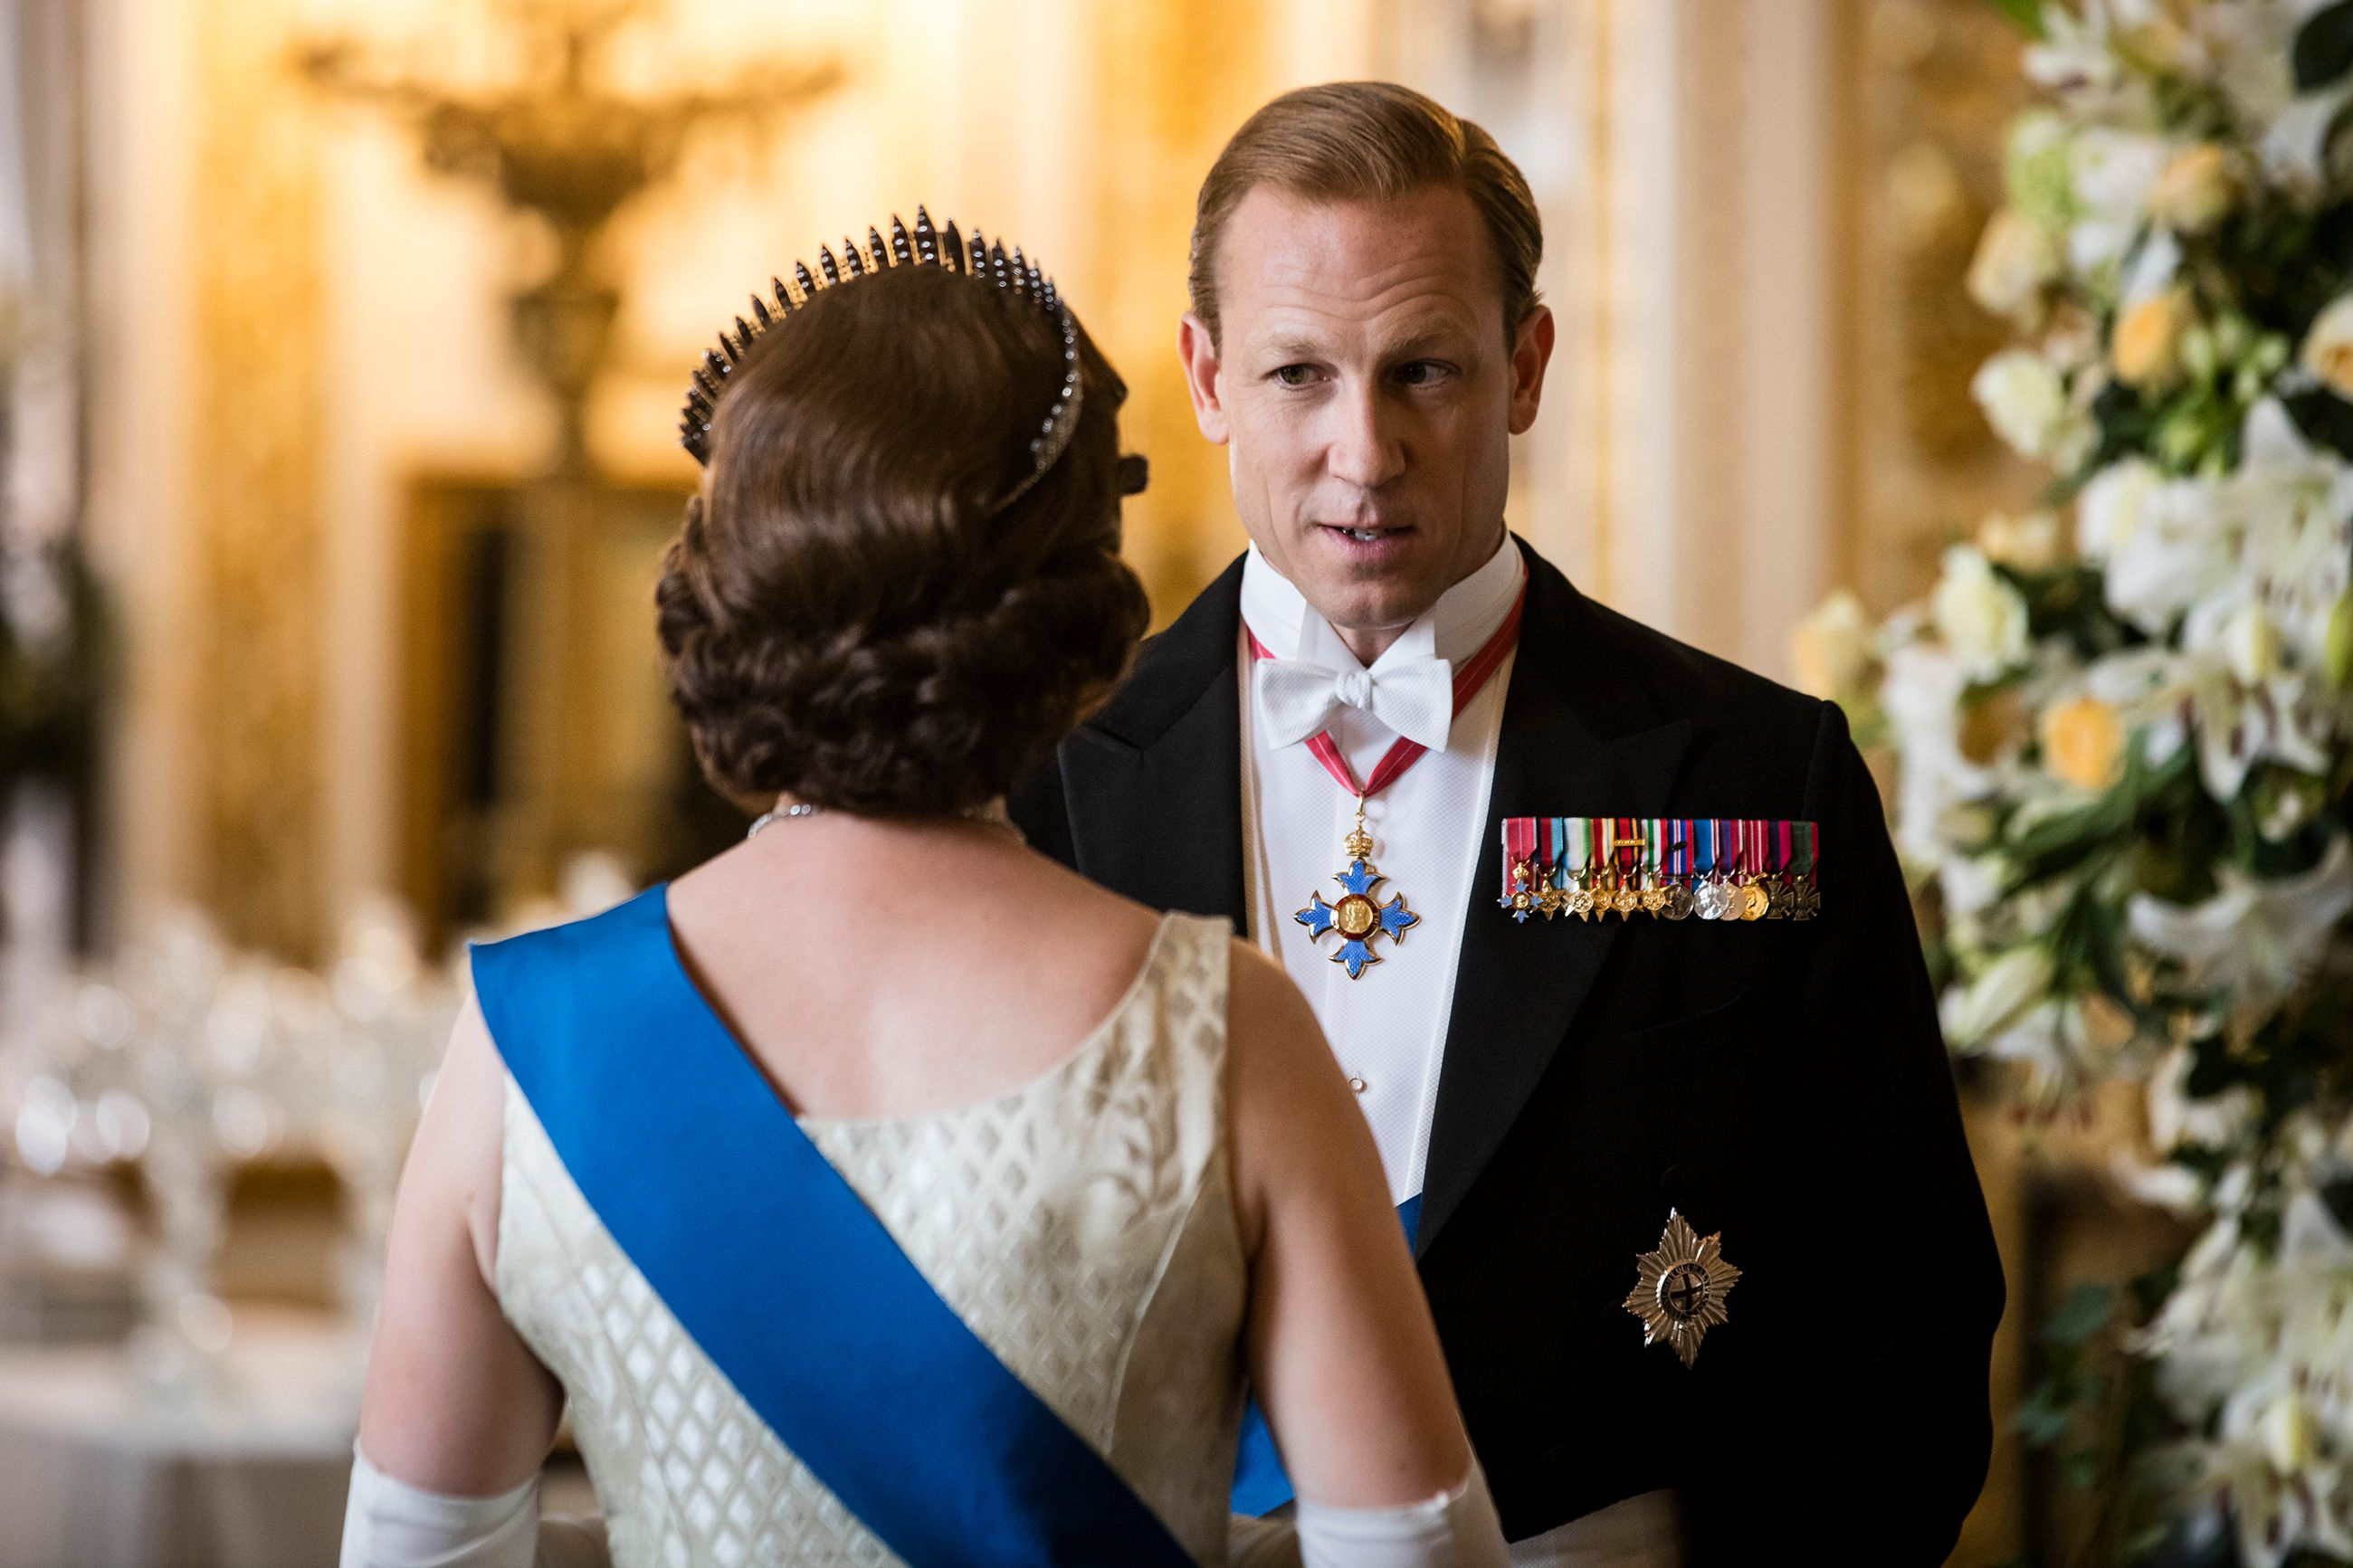 The Crown's Tobias Menzies Wanted to Be a Mime, But Couldn't Afford Mime School